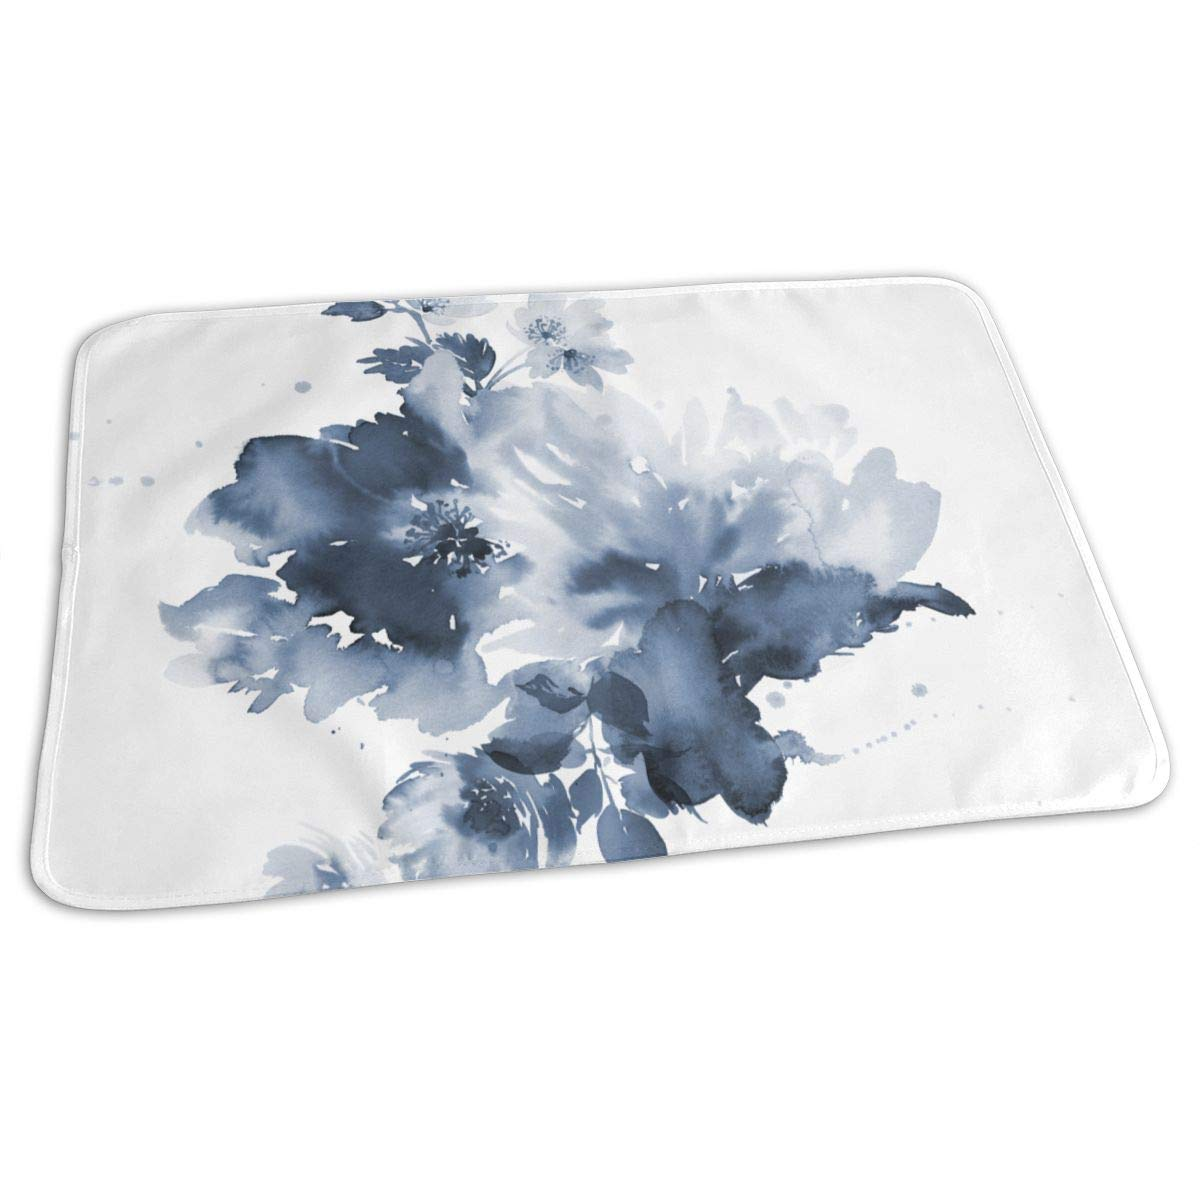 Osvbs Lovely Baby Reusable Waterproof Portable Ink Painting Changing Pad Home Travel 27.5''x19.7'' by Osvbs